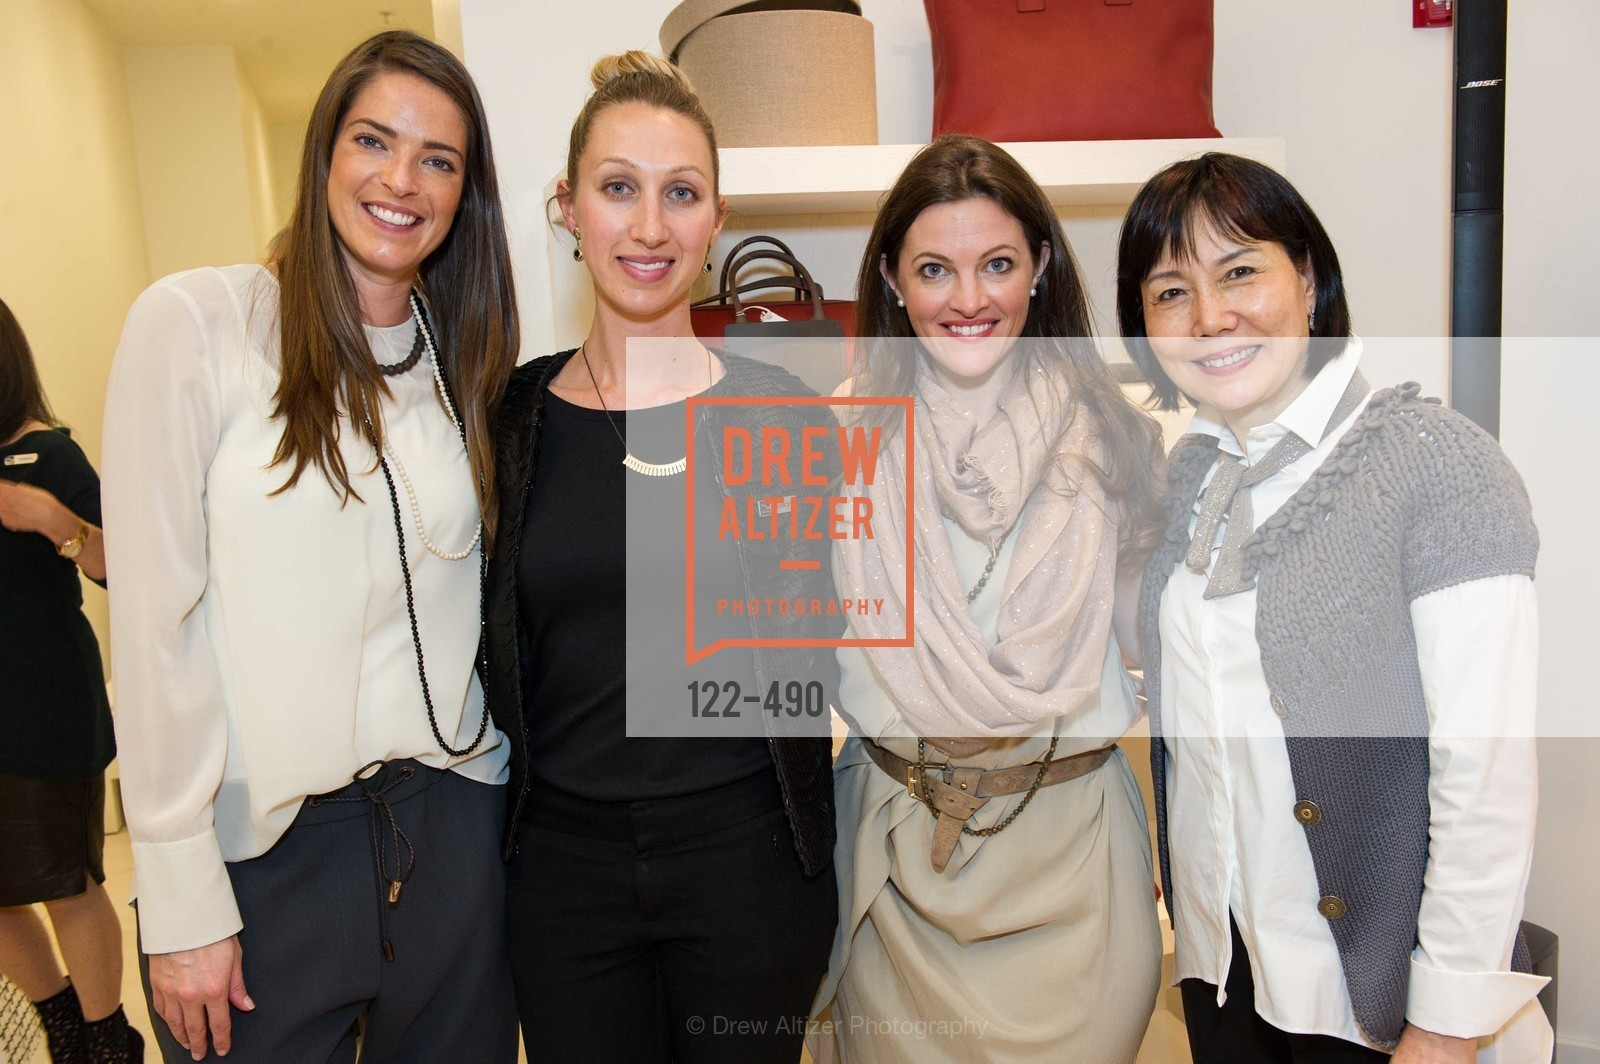 Samantha Wood, Quincey Firth, Alicia Sabella, Grace Hsiung, Nancy Kukacka Hosts Brunello Cucinelli at SAKS FIFTH AVENUE Benefitting New Door Ventures, US. The Battery, April 2nd, 2014,Drew Altizer, Drew Altizer Photography, full-service agency, private events, San Francisco photographer, photographer california